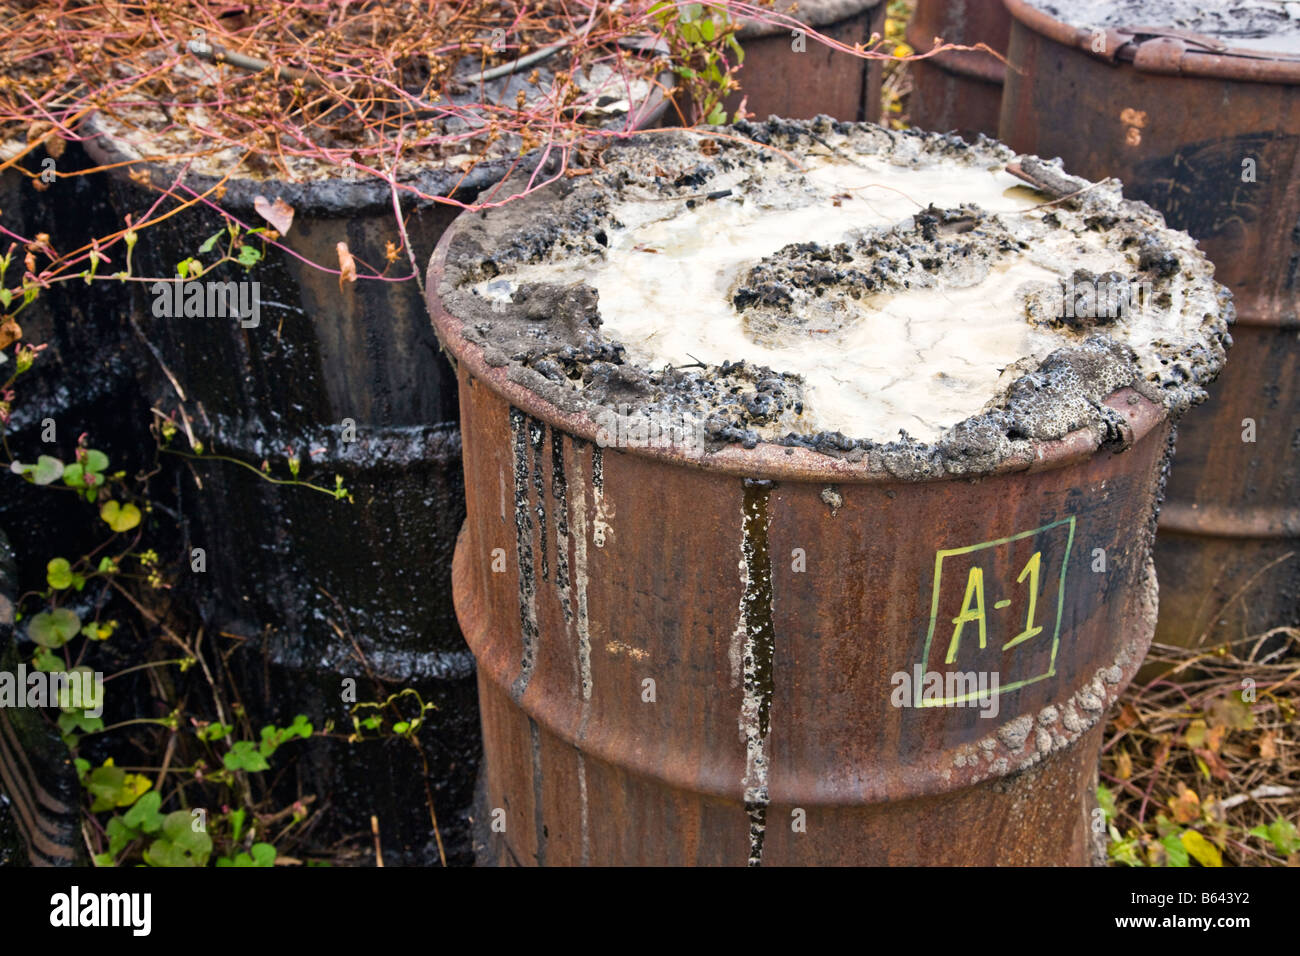 Abandoned corroding rusting oxidizing 55 gallon metal drums. - Stock Image